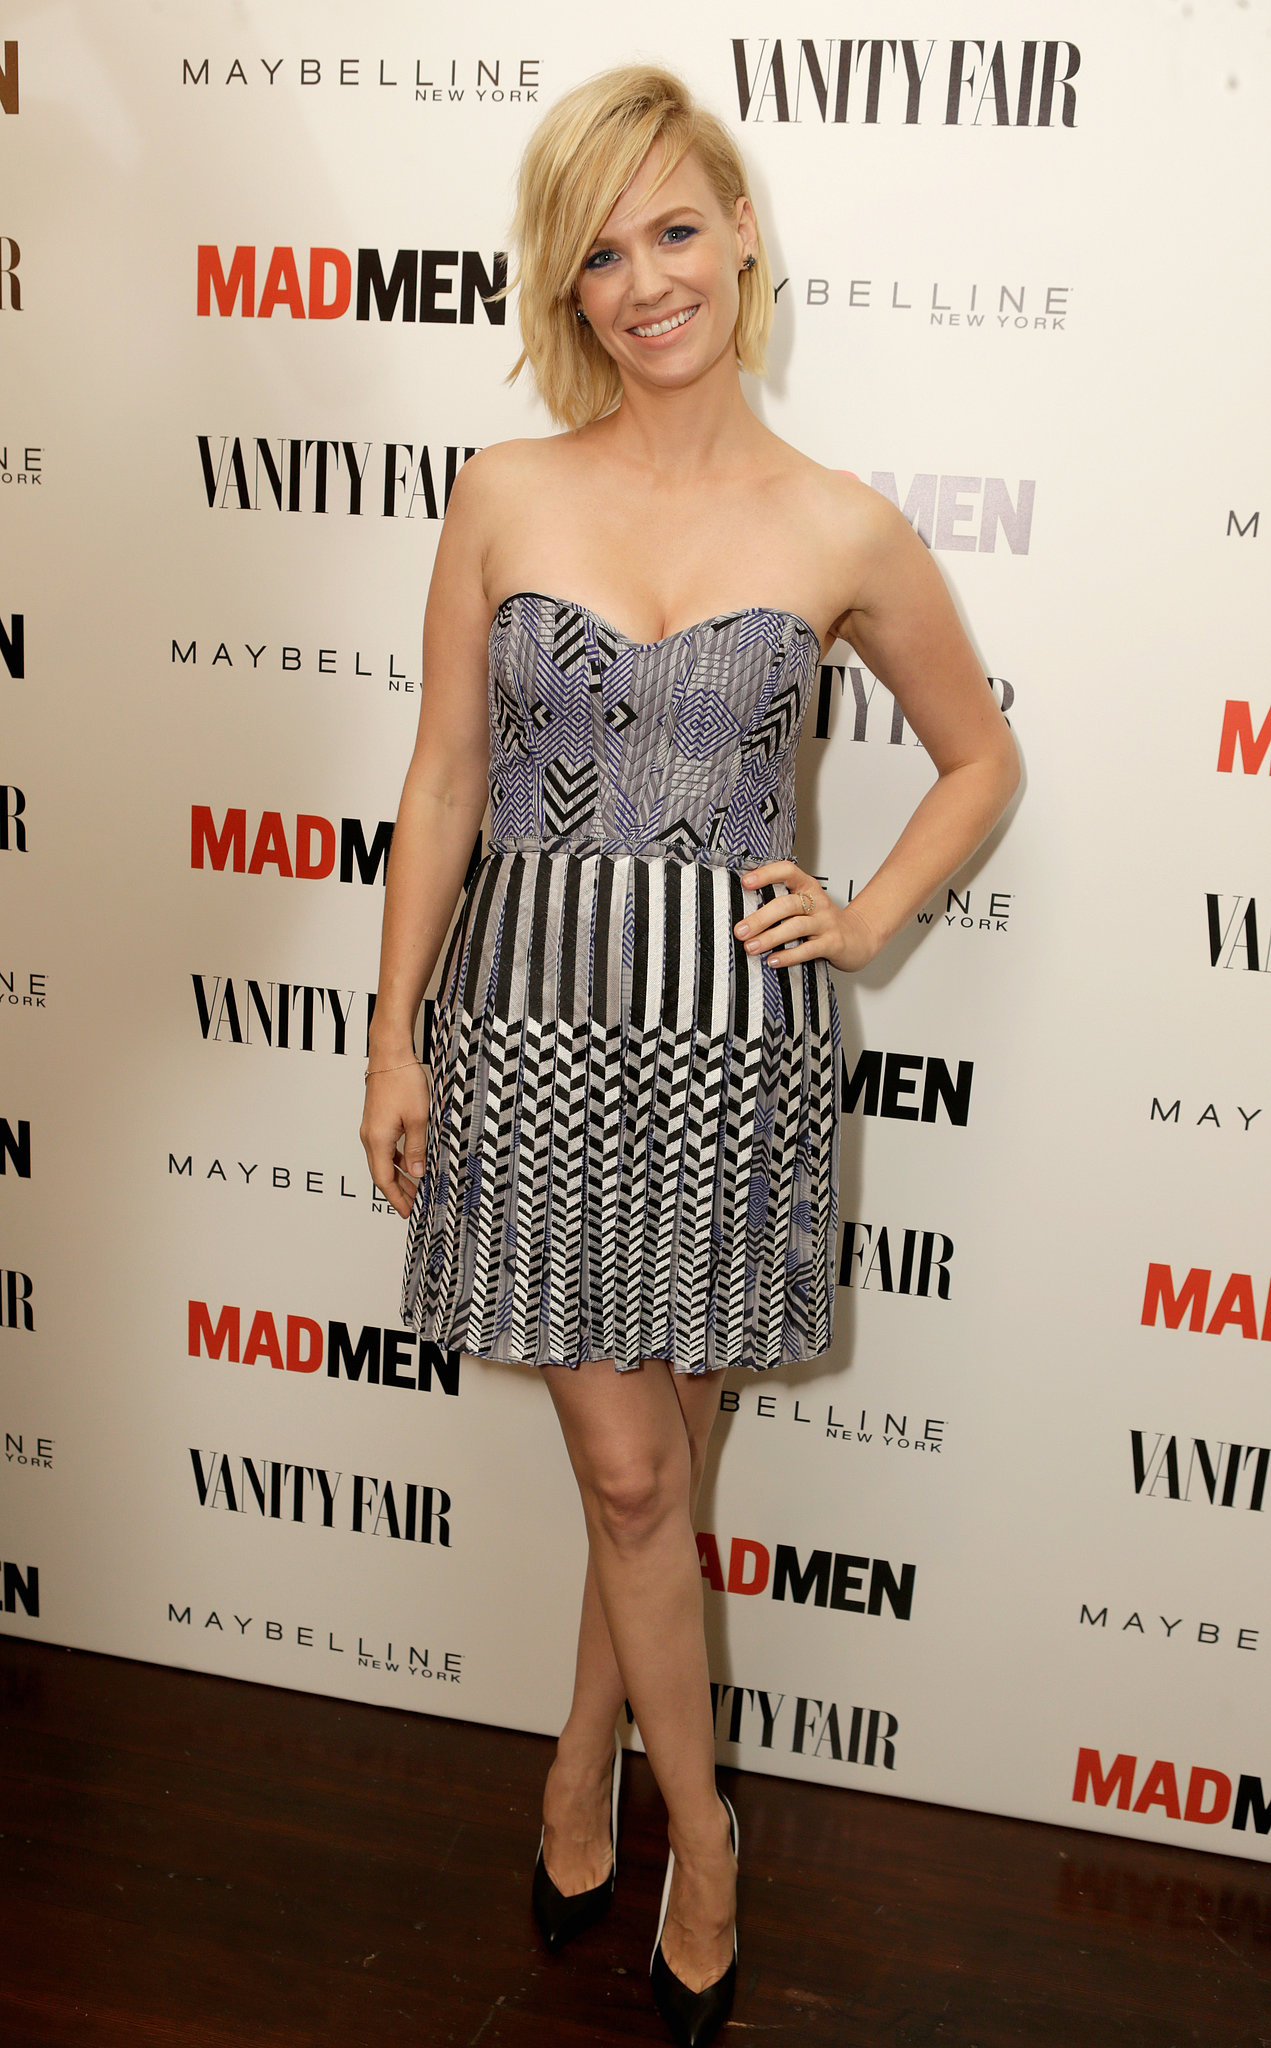 January Jones was flirty in a strapless number with mismatched prints at the Vanity Fair and Maybelline pre-Emmys party in honor of Mad Men.